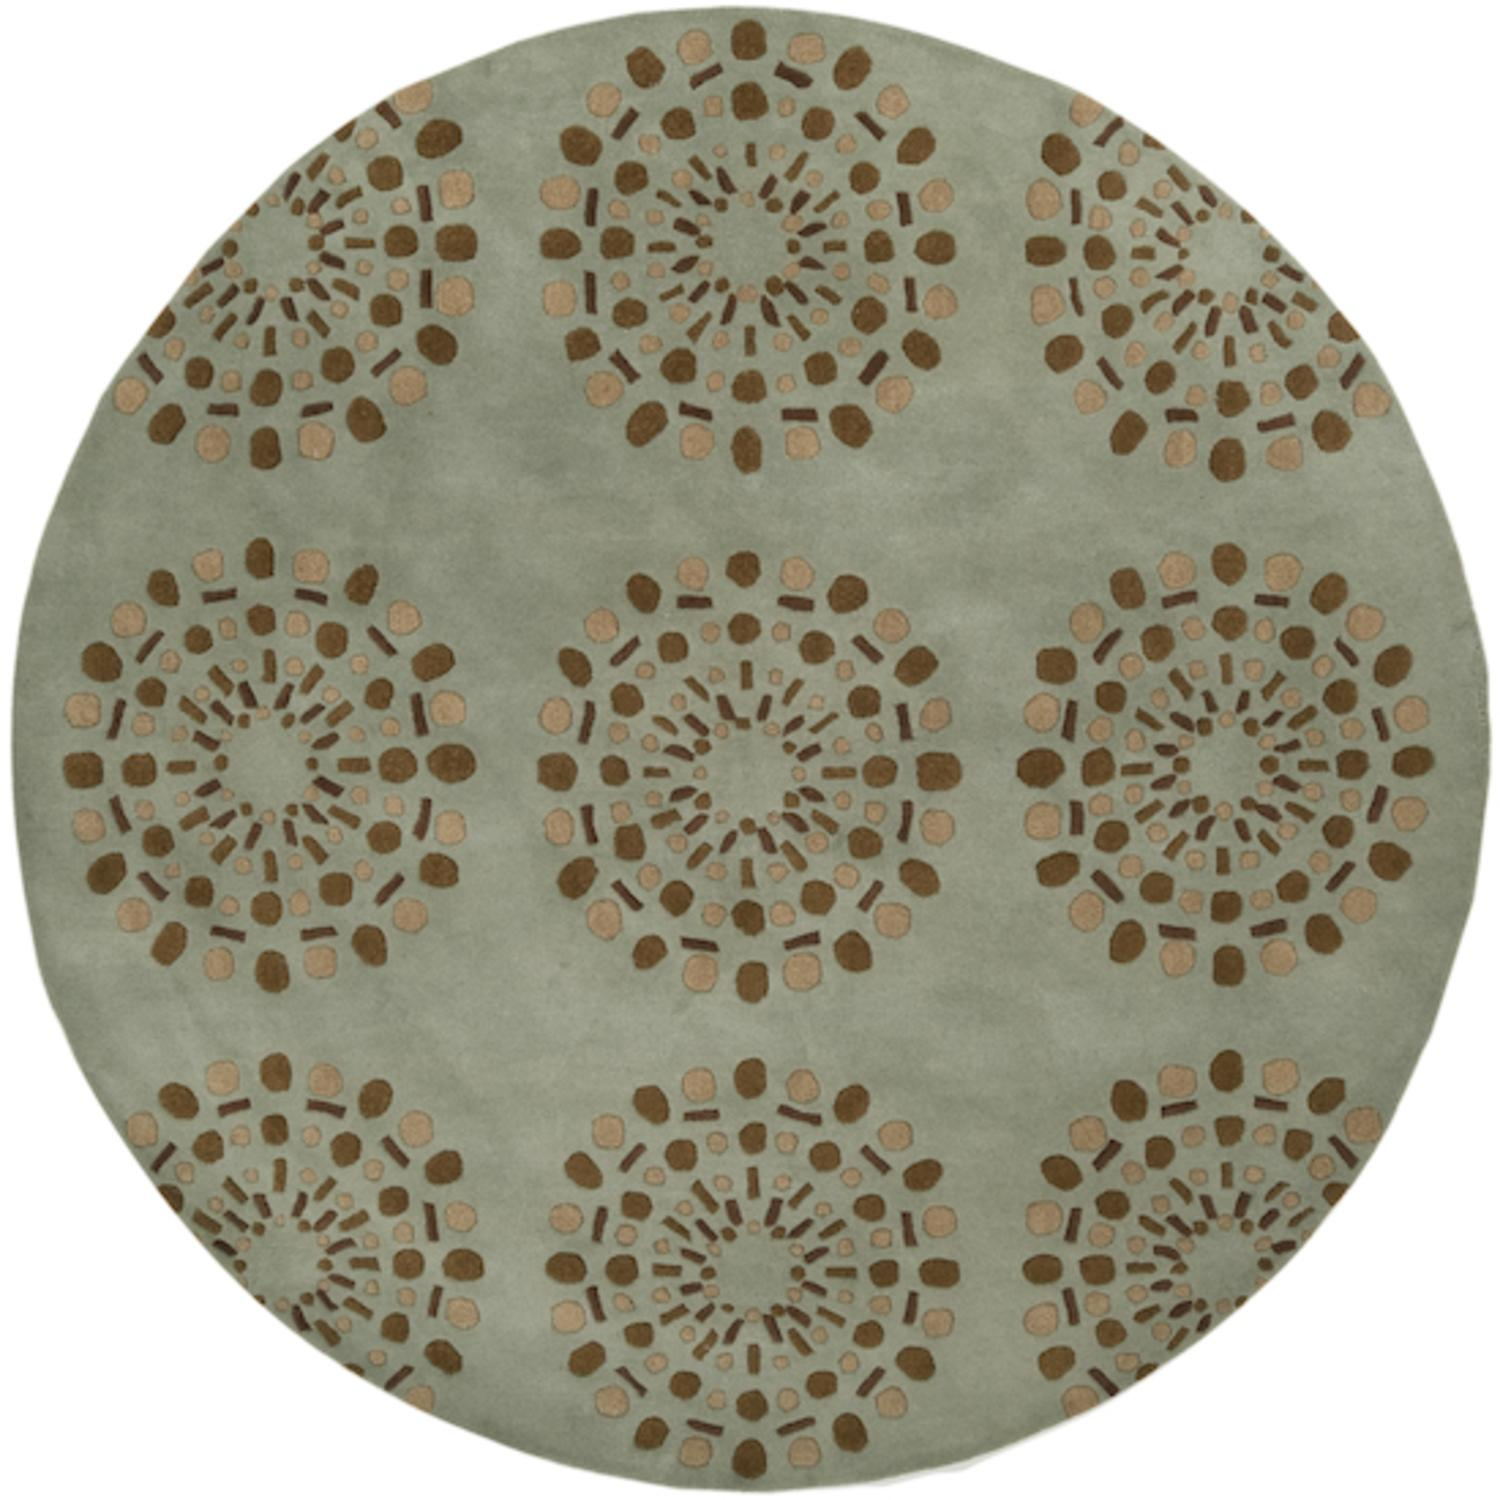 8' Asian Lotus Blue Haze and Brown Round Wool Area Throw Rug